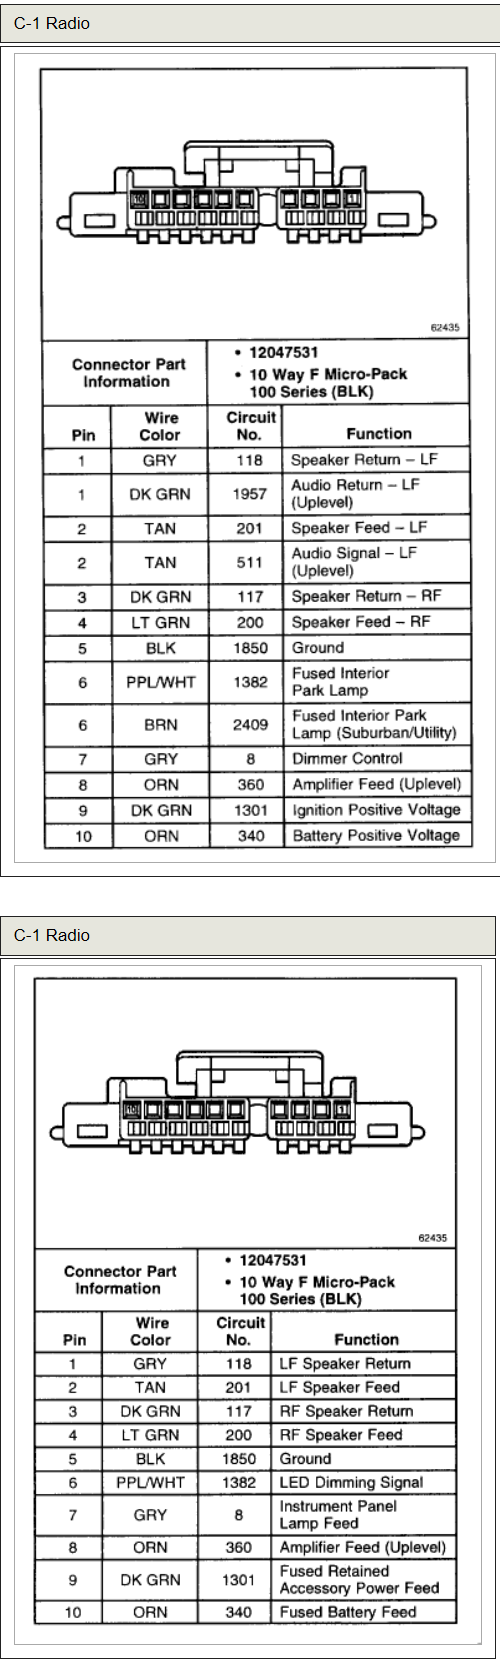 Chevrolet Car Radio Stereo Audio Wiring Diagram Autoradio Connector Chevy Wire Installation Schematic Schema Esquema De Conexiones Anschlusskammern Konektor